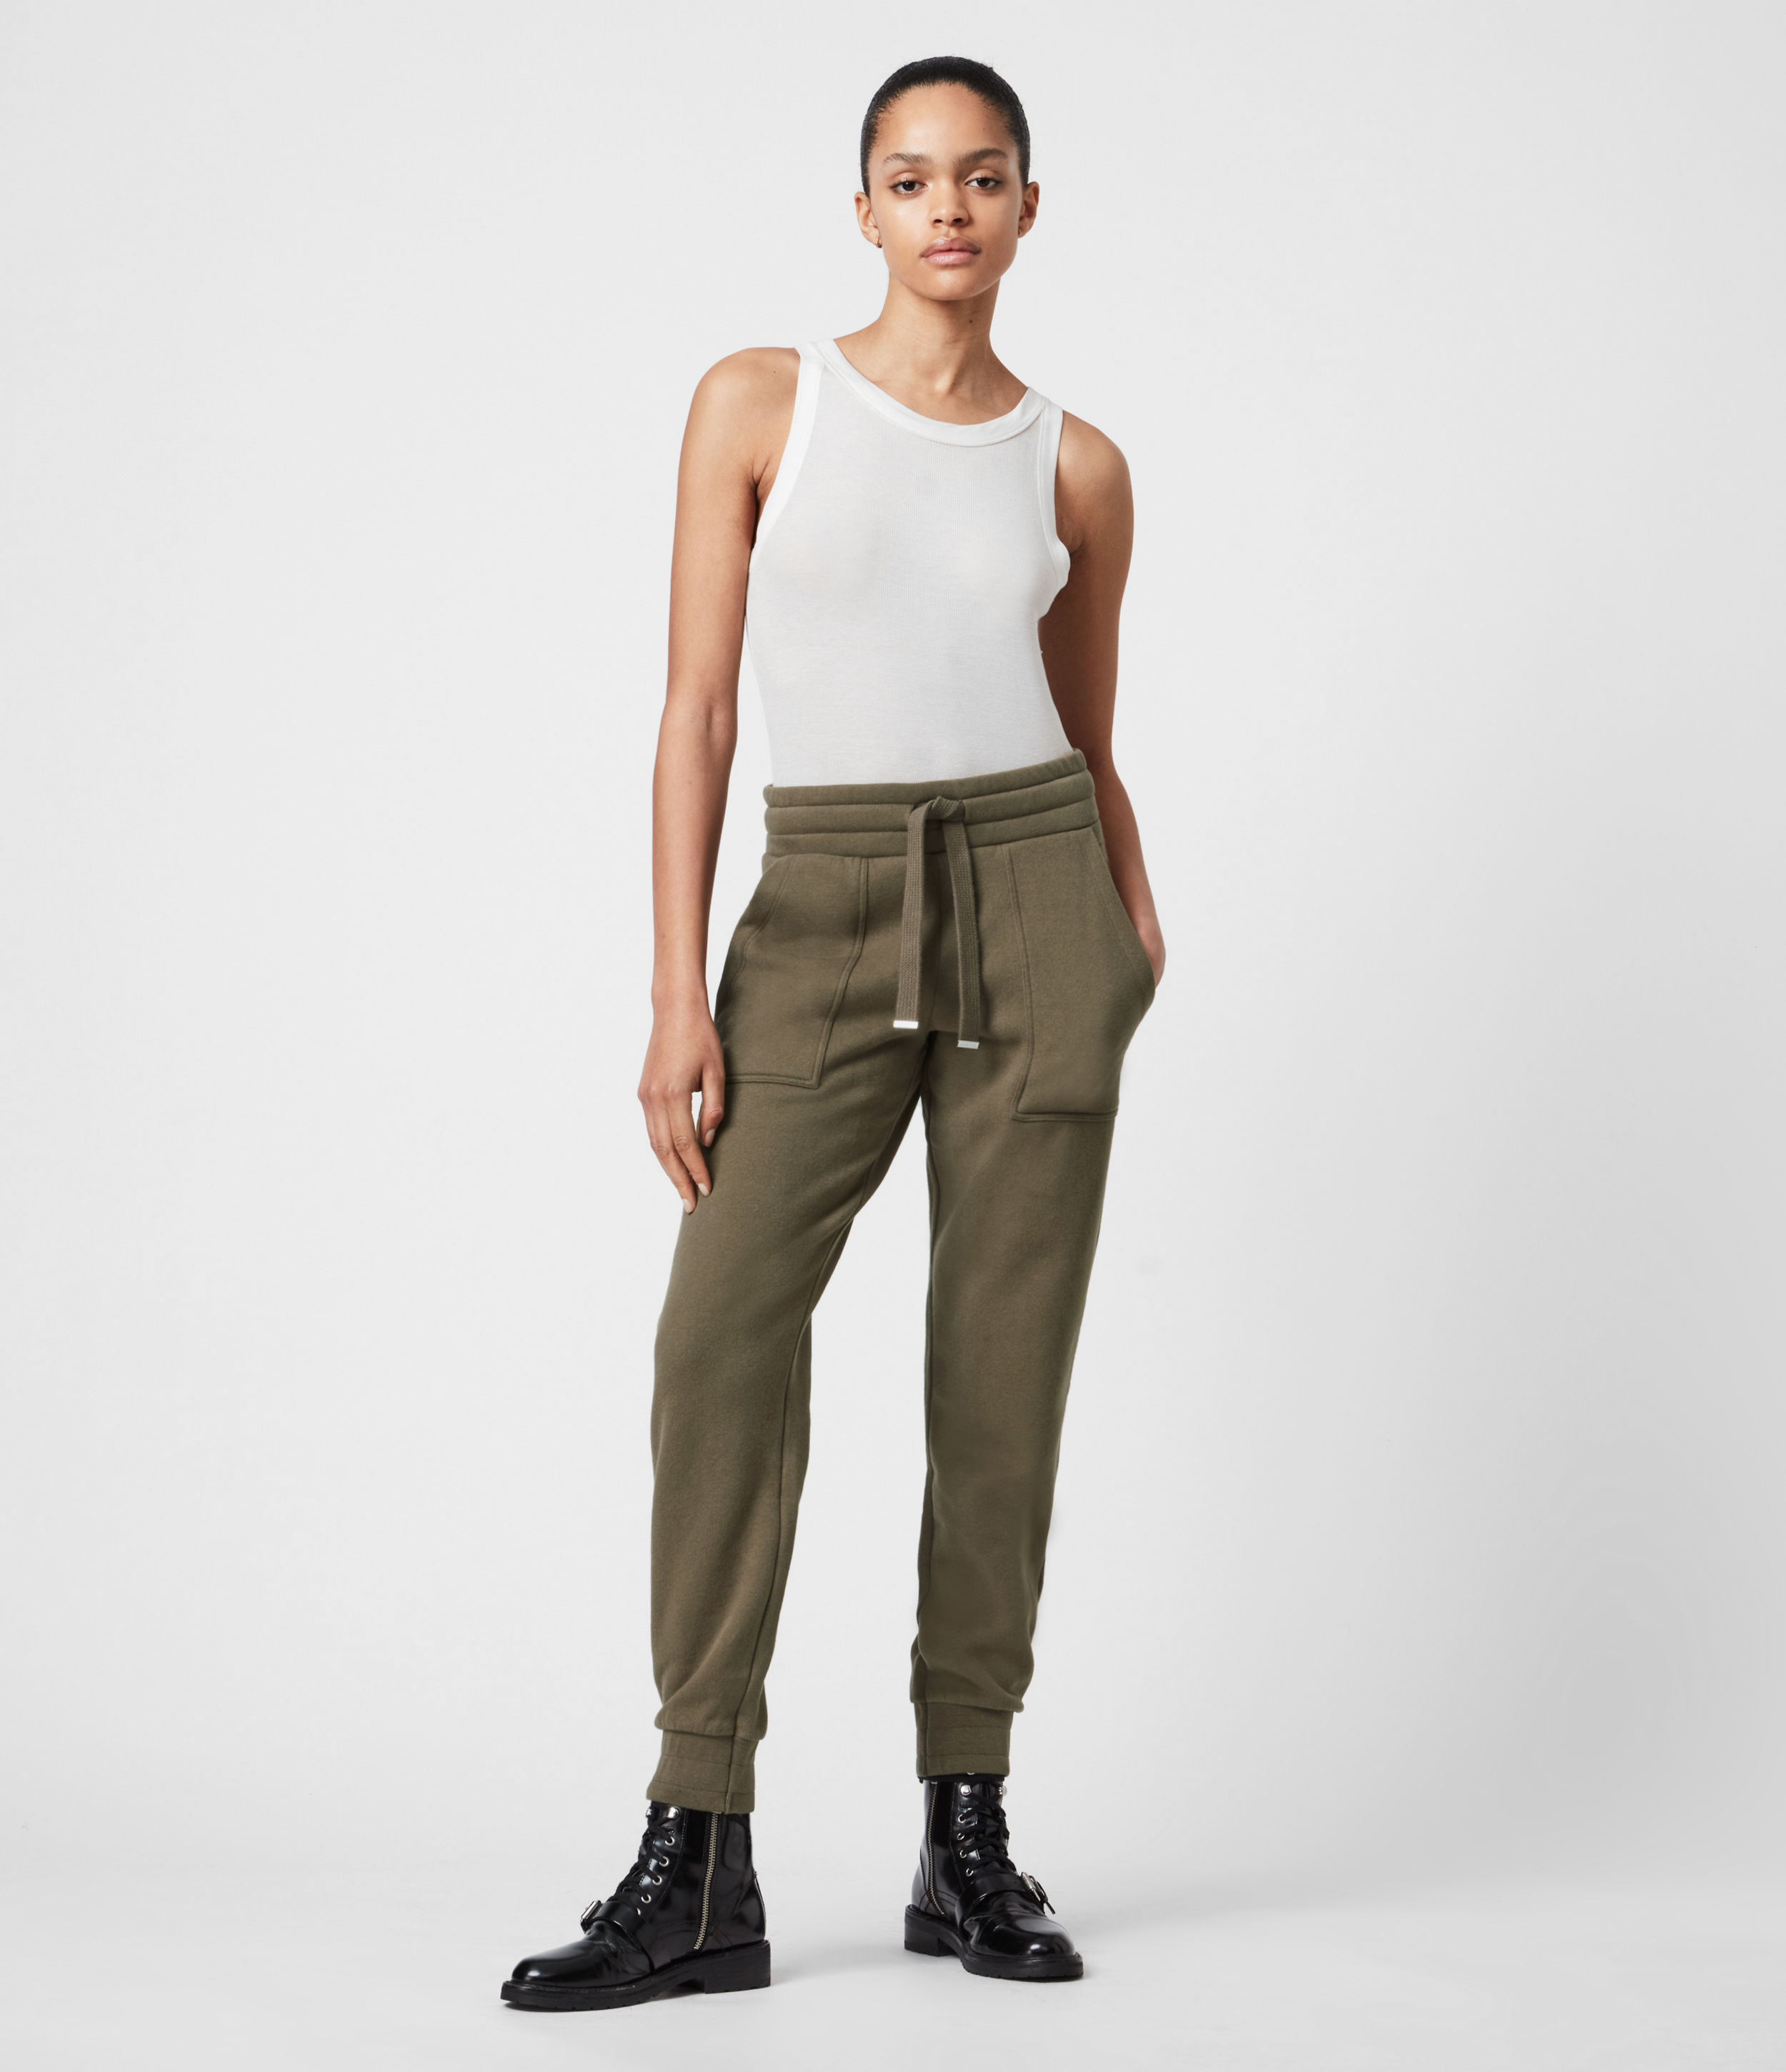 AllSaints Women's Cotton Relaxed Fit Lucia Cuffed Sweatpants, Green, Size: 2